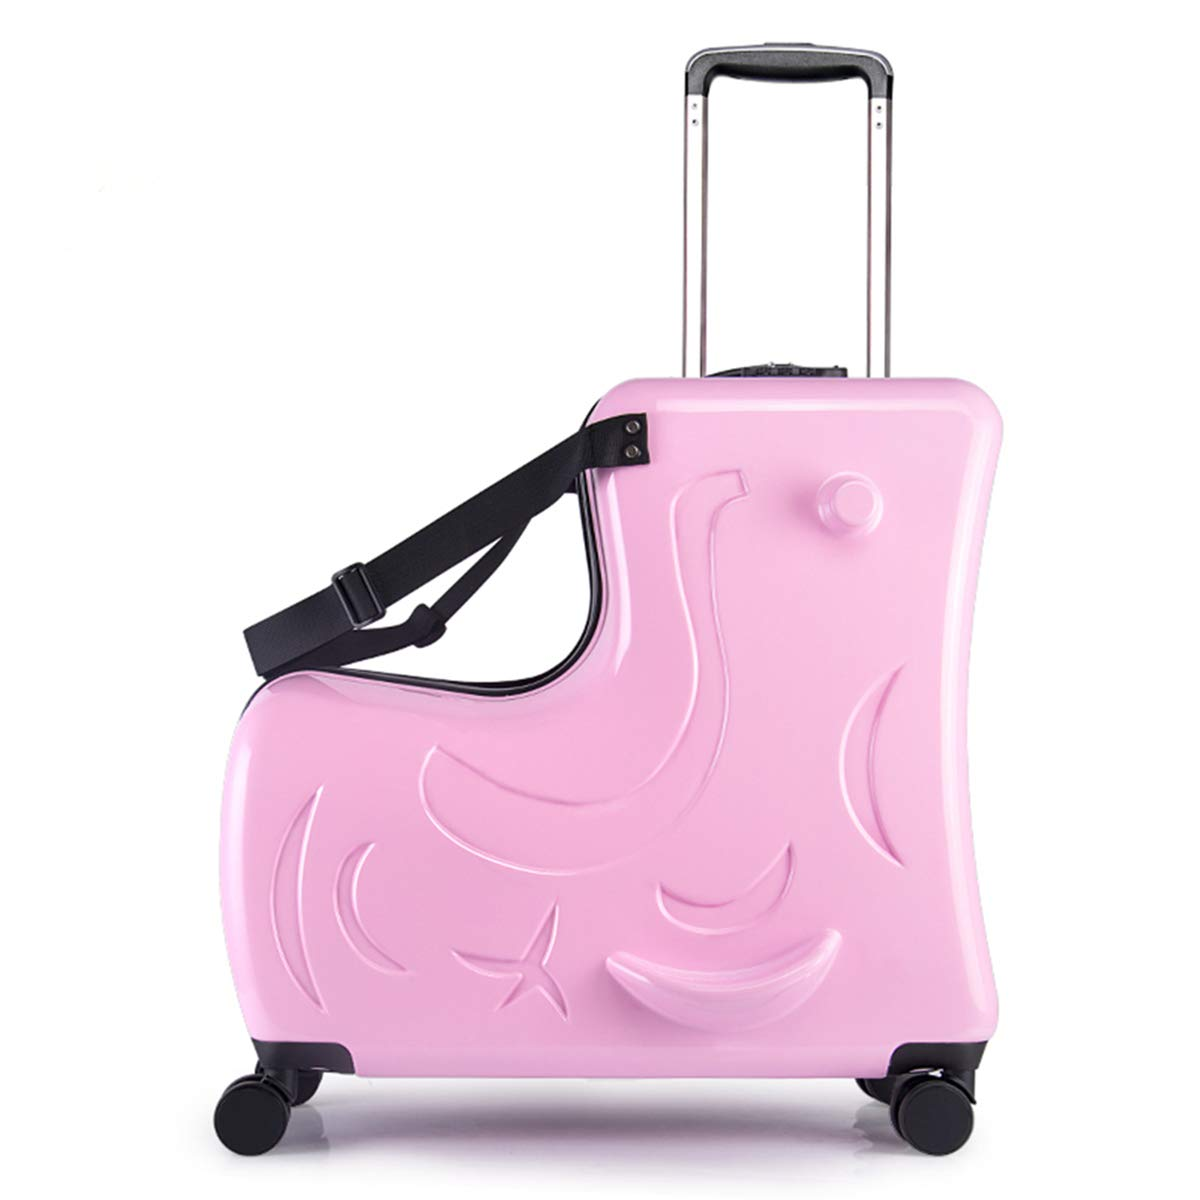 Portable children's travel thickening trolley case,Unisex Travel Tots Kids trunk (Color:pink,Size:20 inch) by wangbaochang2017